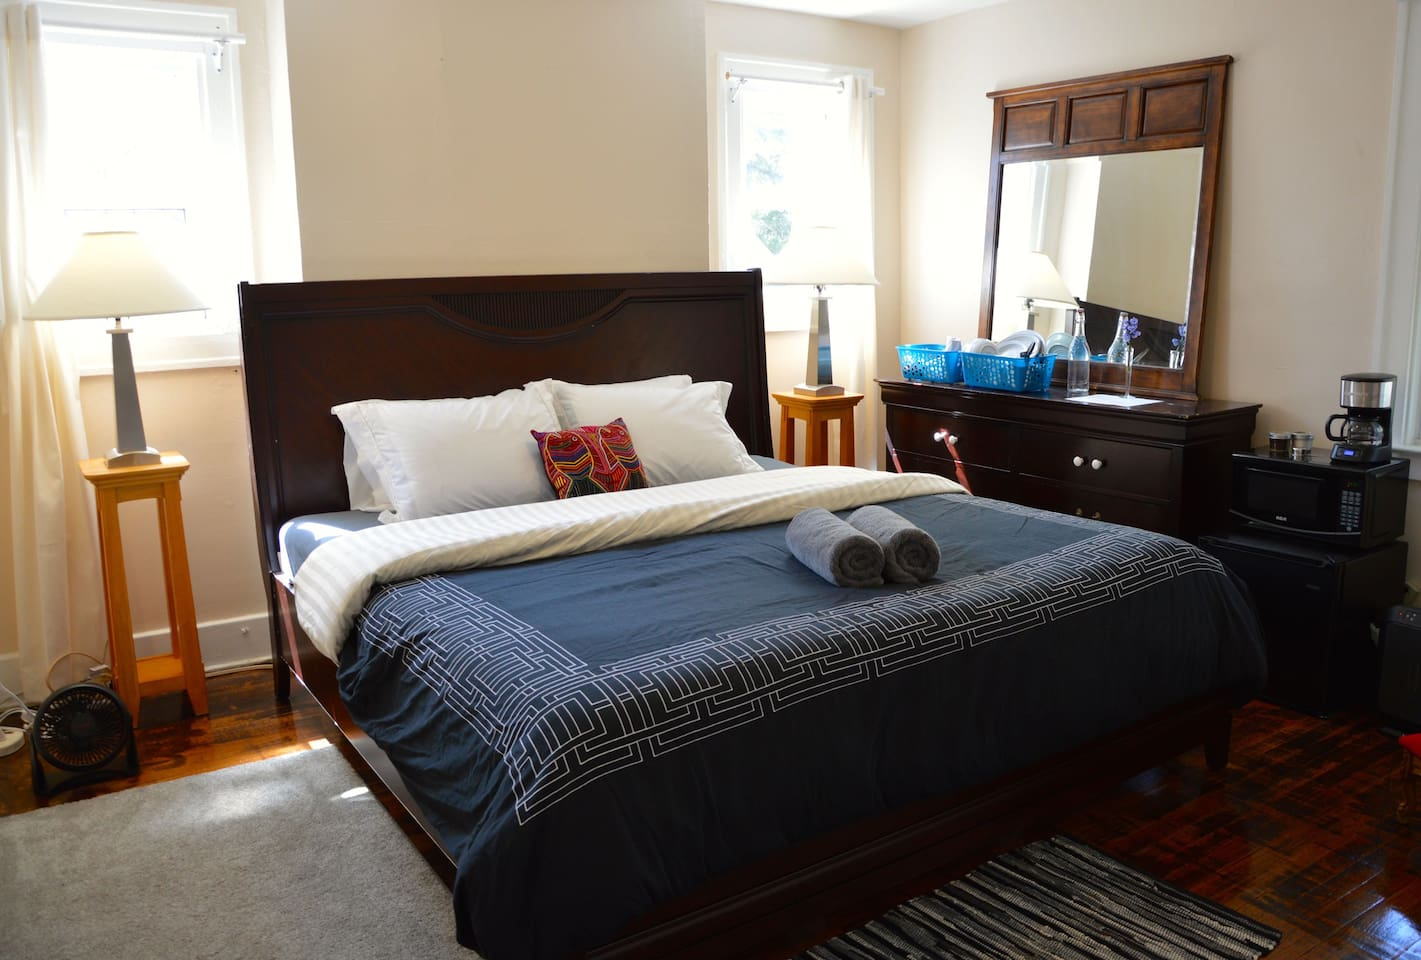 """Deluxe private room (shared bath) features a king-size memory foam mattress (76""""x80"""" or 193cmx203cm) with fresh linens & towels, digital-door-lock, heater & a/c, mini-fridge, microwave, coffee maker + freshly ground coffee, plates, cups, utensils, etc."""